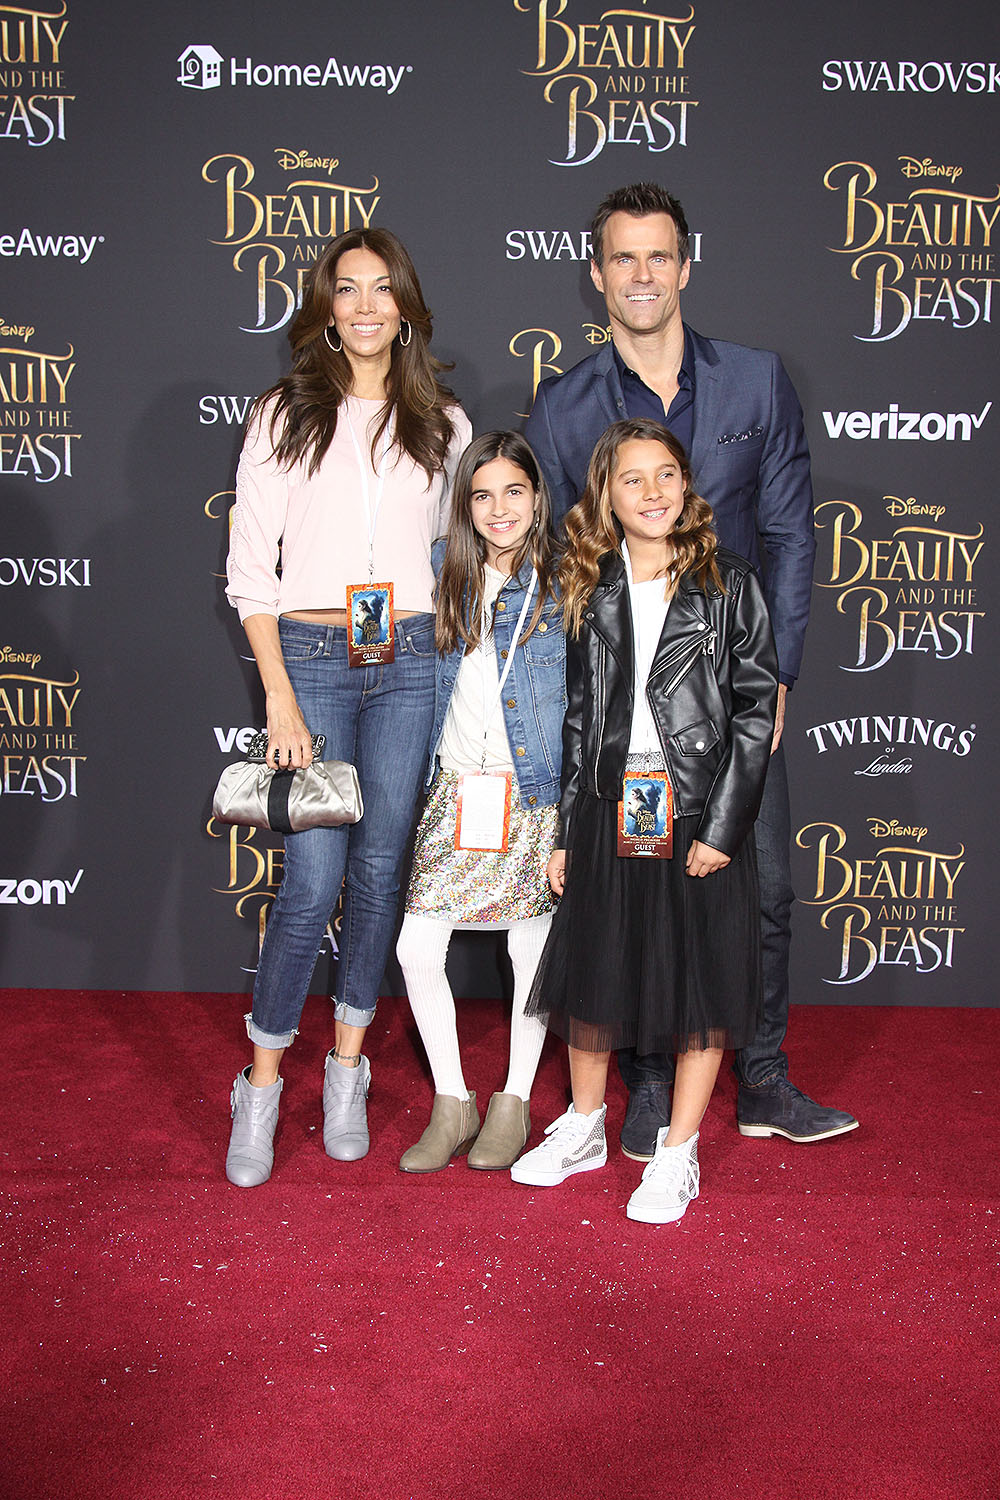 Cameron Mathison Wife Vanessa Arevalo And Kids Naibuzz Getty cameron mathison and vanessa arevalo attend the american humane association's 5th annual hero dog awards 2015 at the beverly hilton hotel in 2015. cameron mathison wife vanessa arevalo